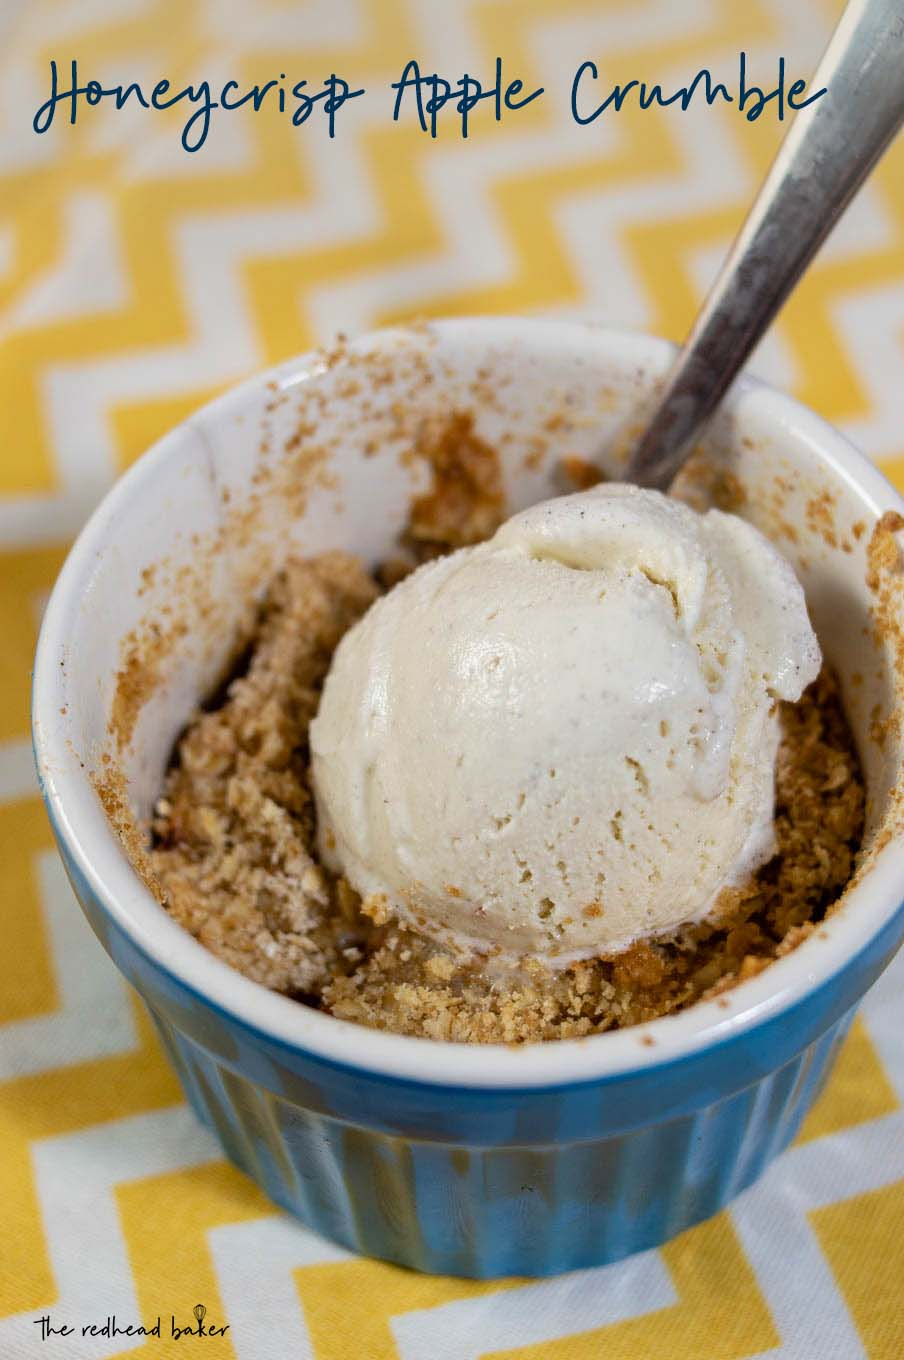 Honeycrisp apple crumble is an easy, delicious dessert. The chopped apples are baked with an oat/brown sugar topping. Add ice cream just before serving, which melts into a creamy sauce.